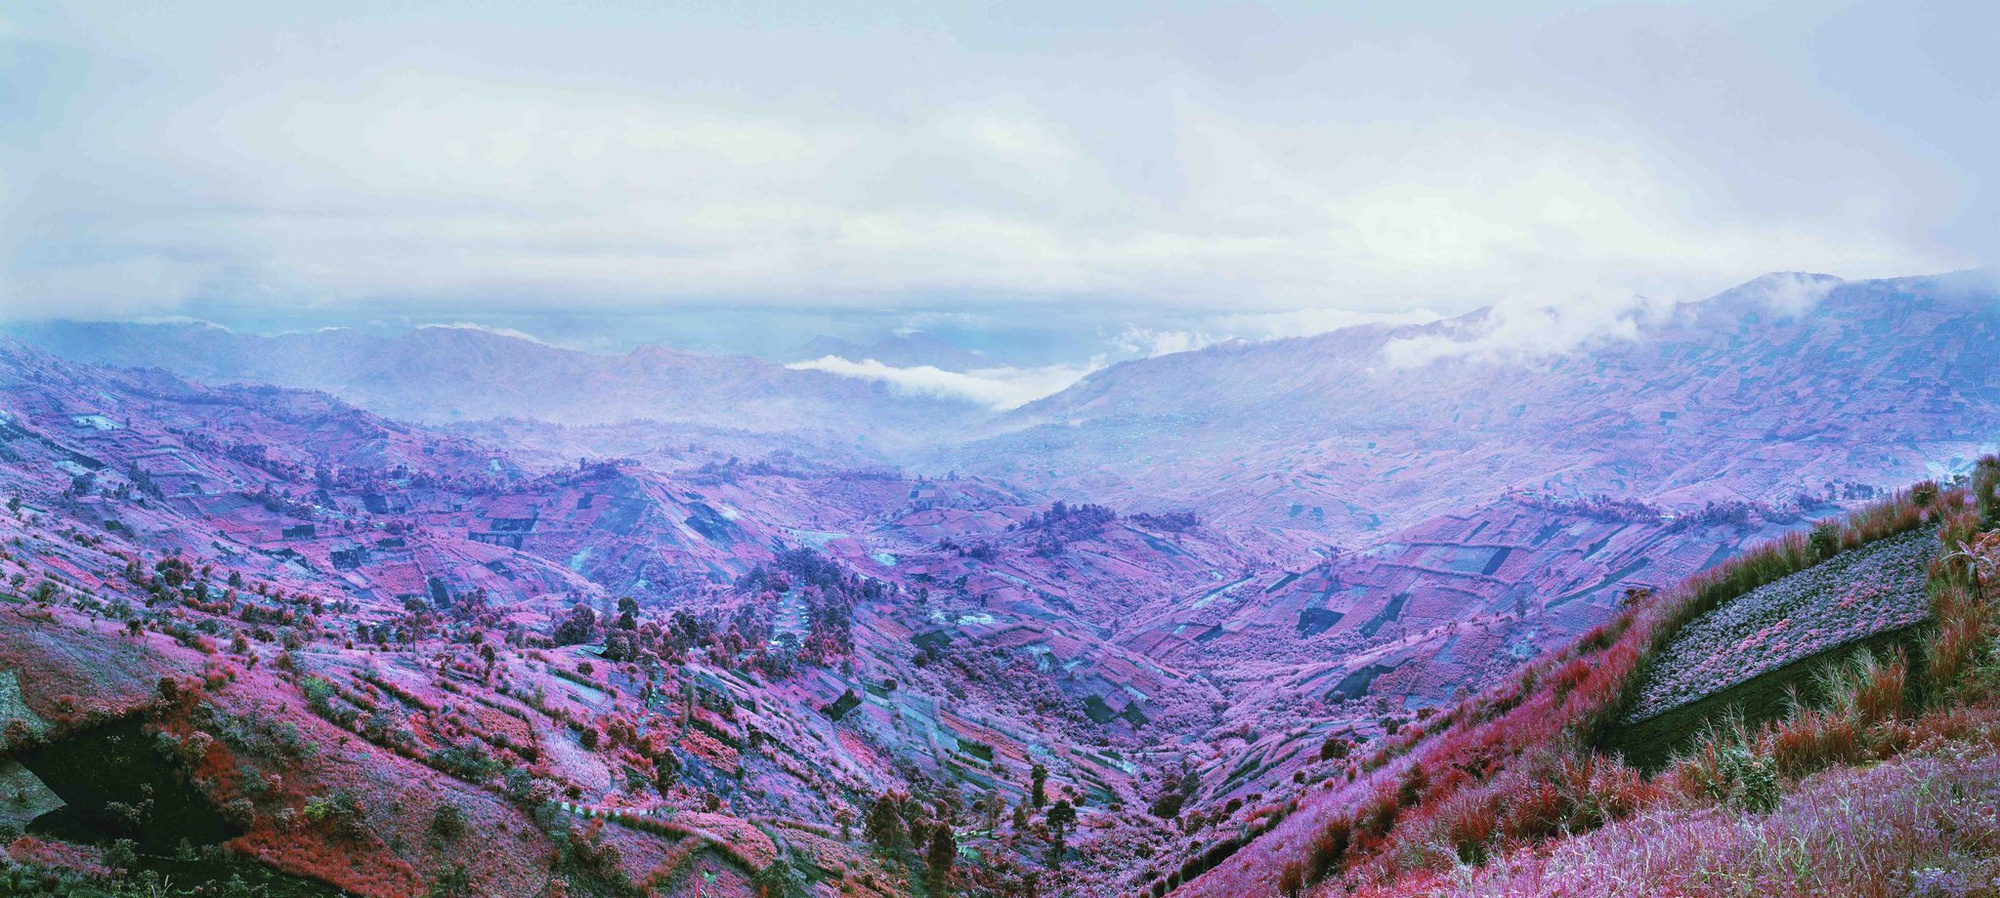 Richard Mosse - Because the Night, 2012, C-print, 54 x 114 in. (137.2 x 289.6 cm.), Edition of 5 +1AP © Richard Mosse